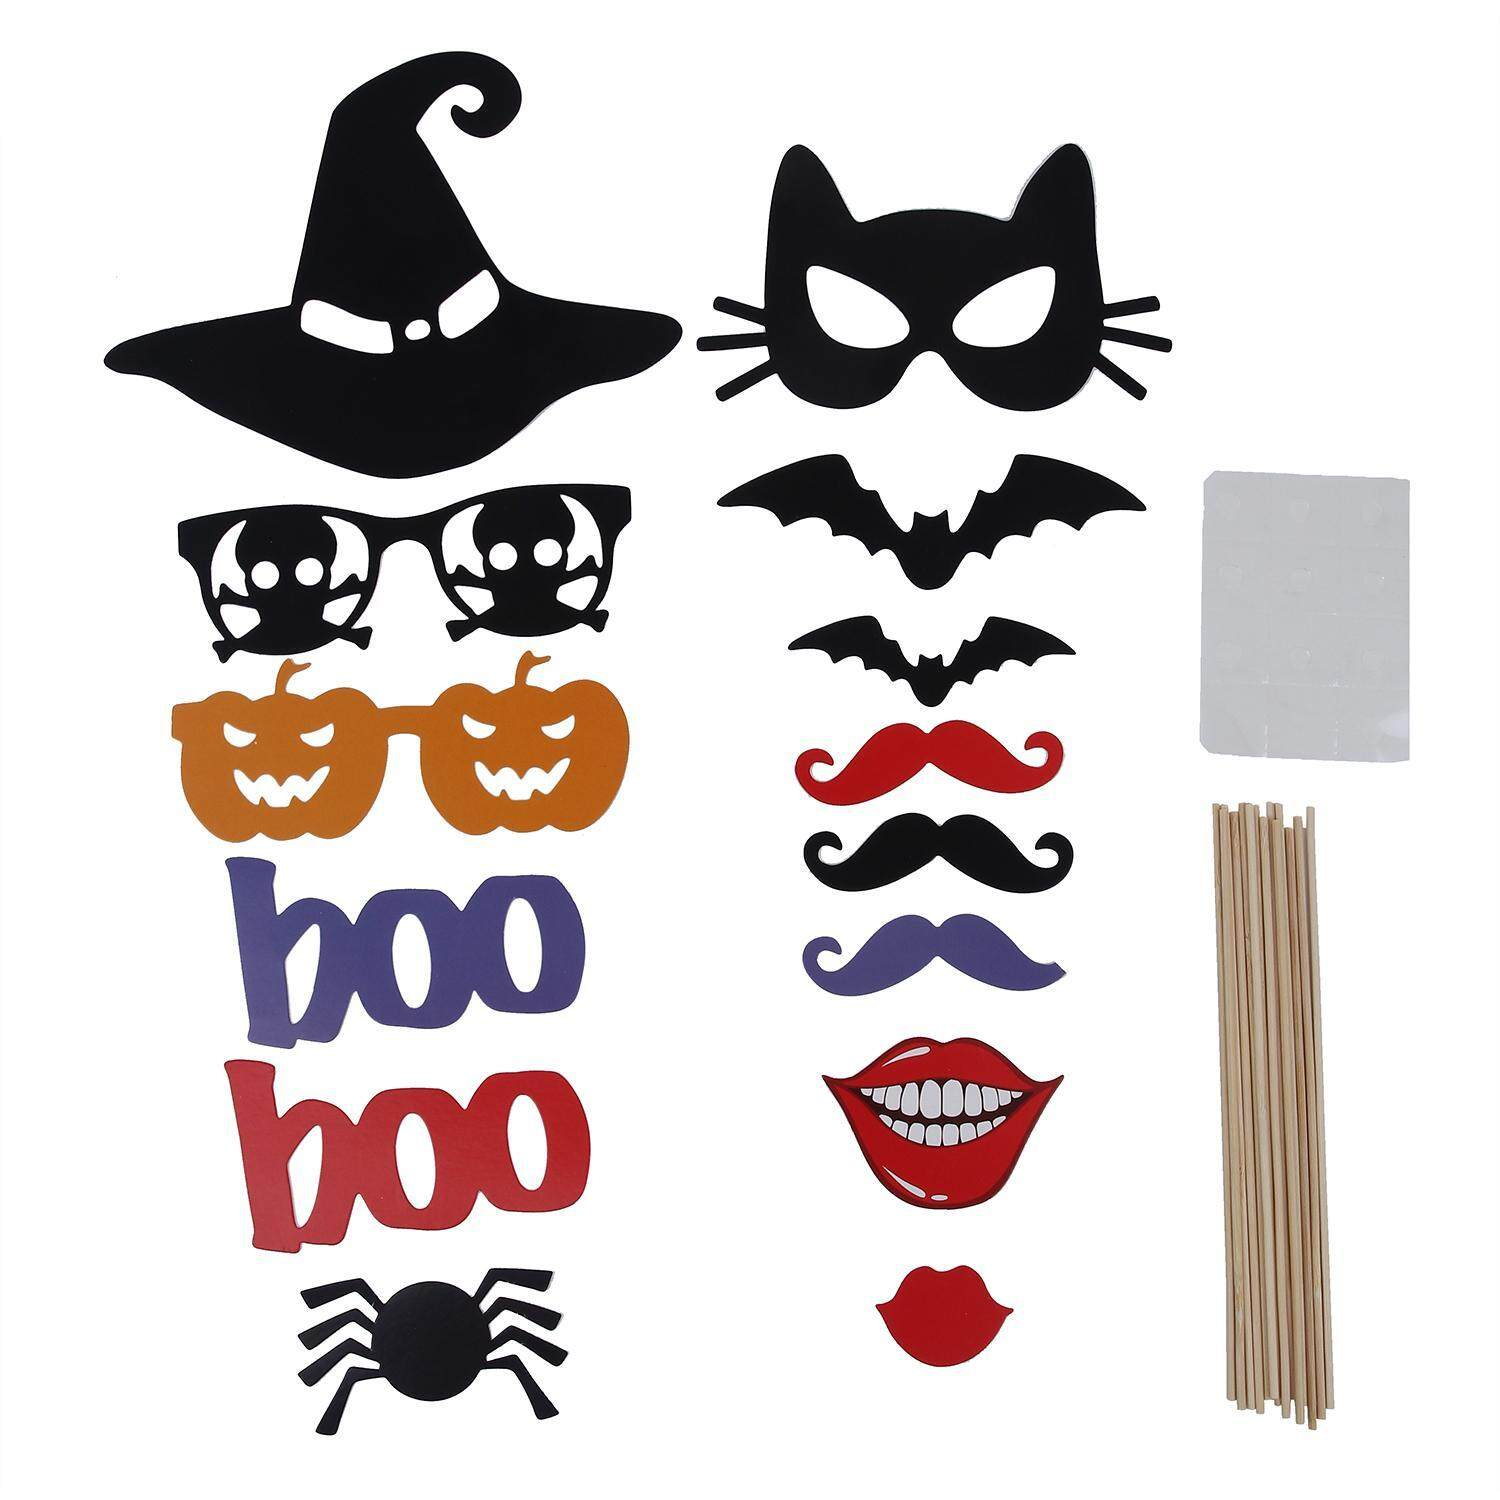 jiaxiang Photo Booth Props DIY Kit For Halloween Christmas Wedding Birthday Graduation Party,Photobooth Dress-up Accessories Party Favors,58 Set - intl